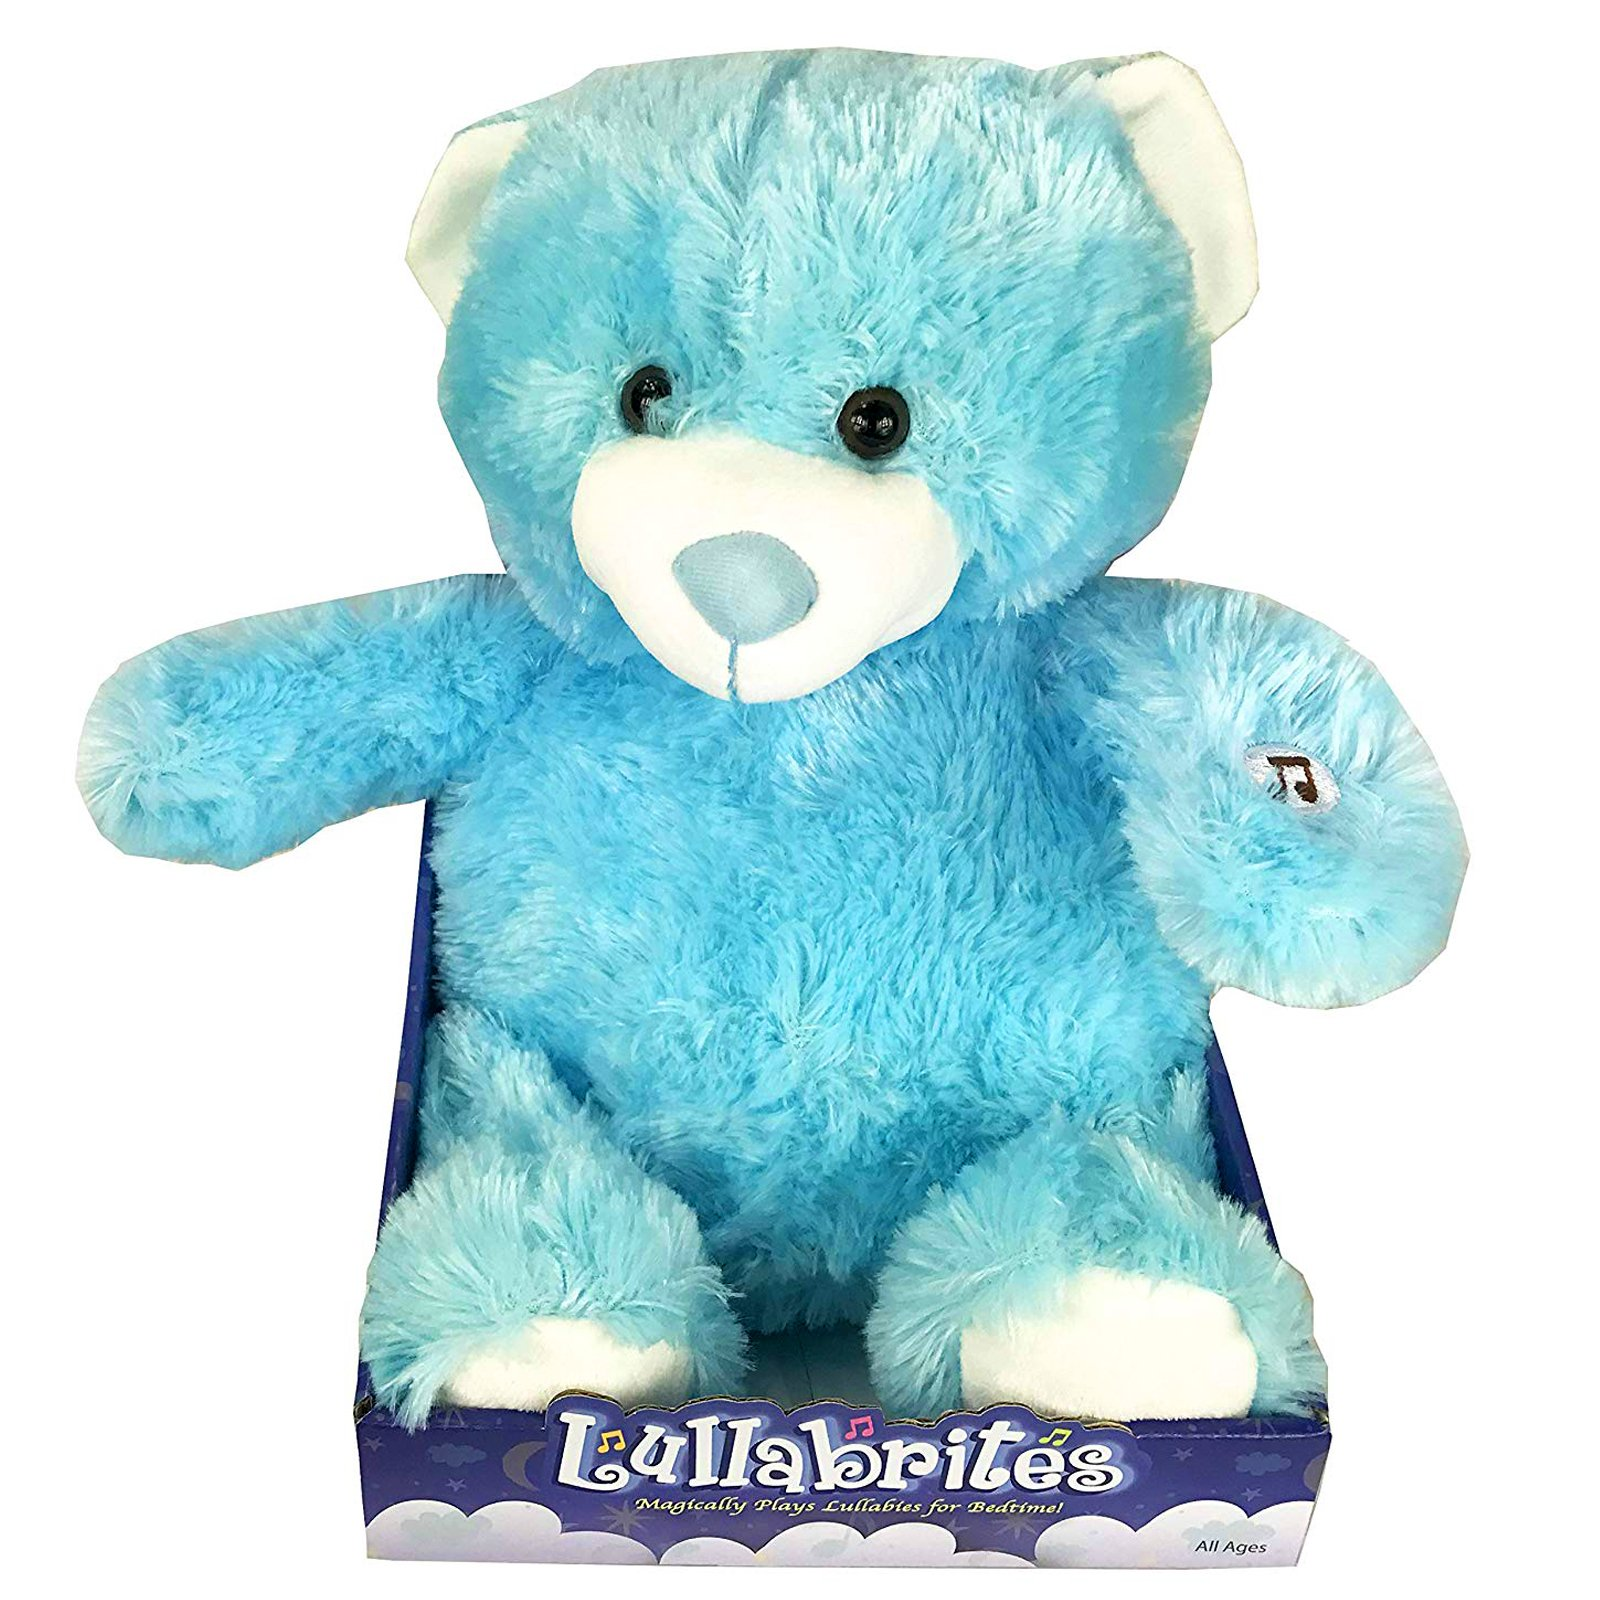 Lullabrites Kids Plush Teddy Bear Lights Up Plays Music